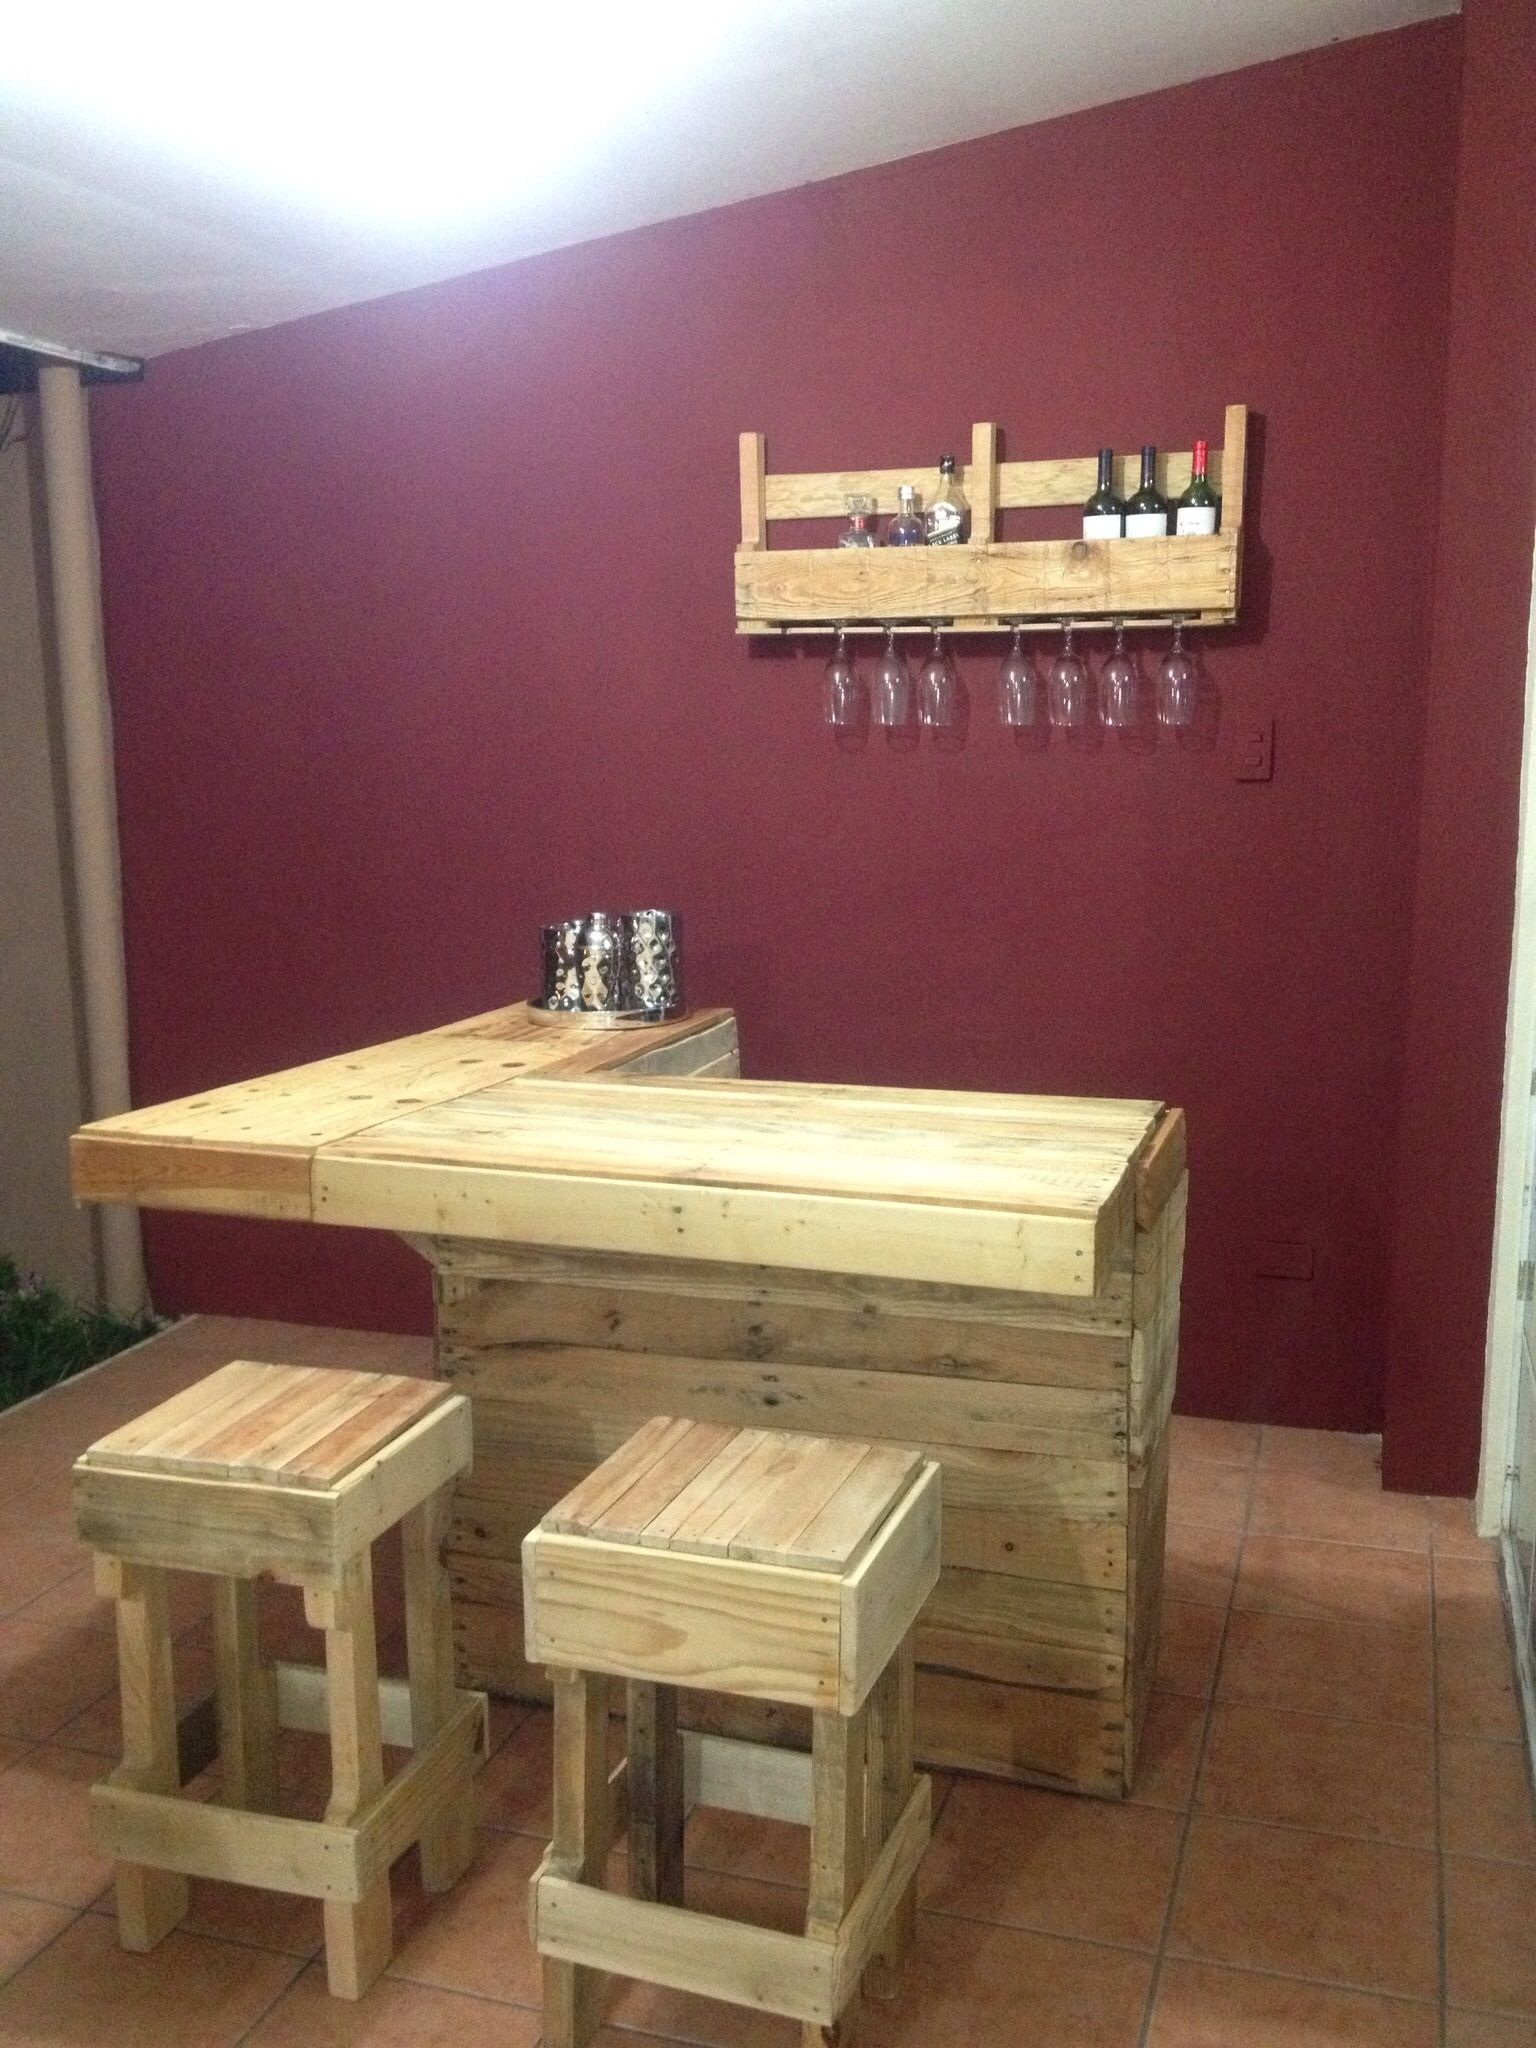 Pallet Bar   Kitchen And Bar Idea Using Just Pallets!